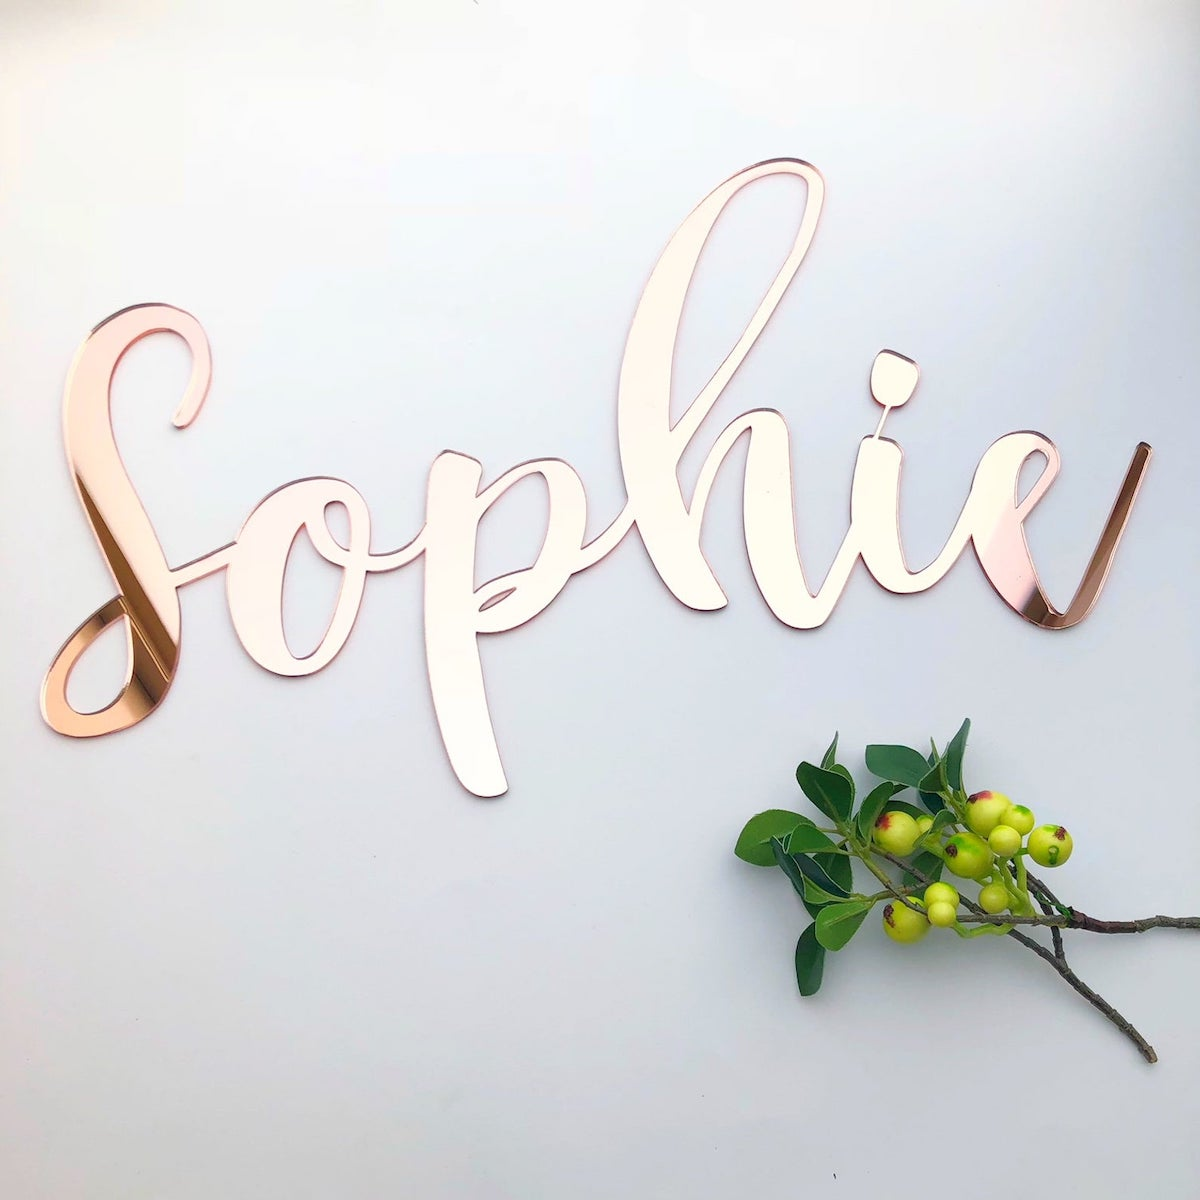 Etsy Gift Guide - Rose Gold Mirror Name Sign